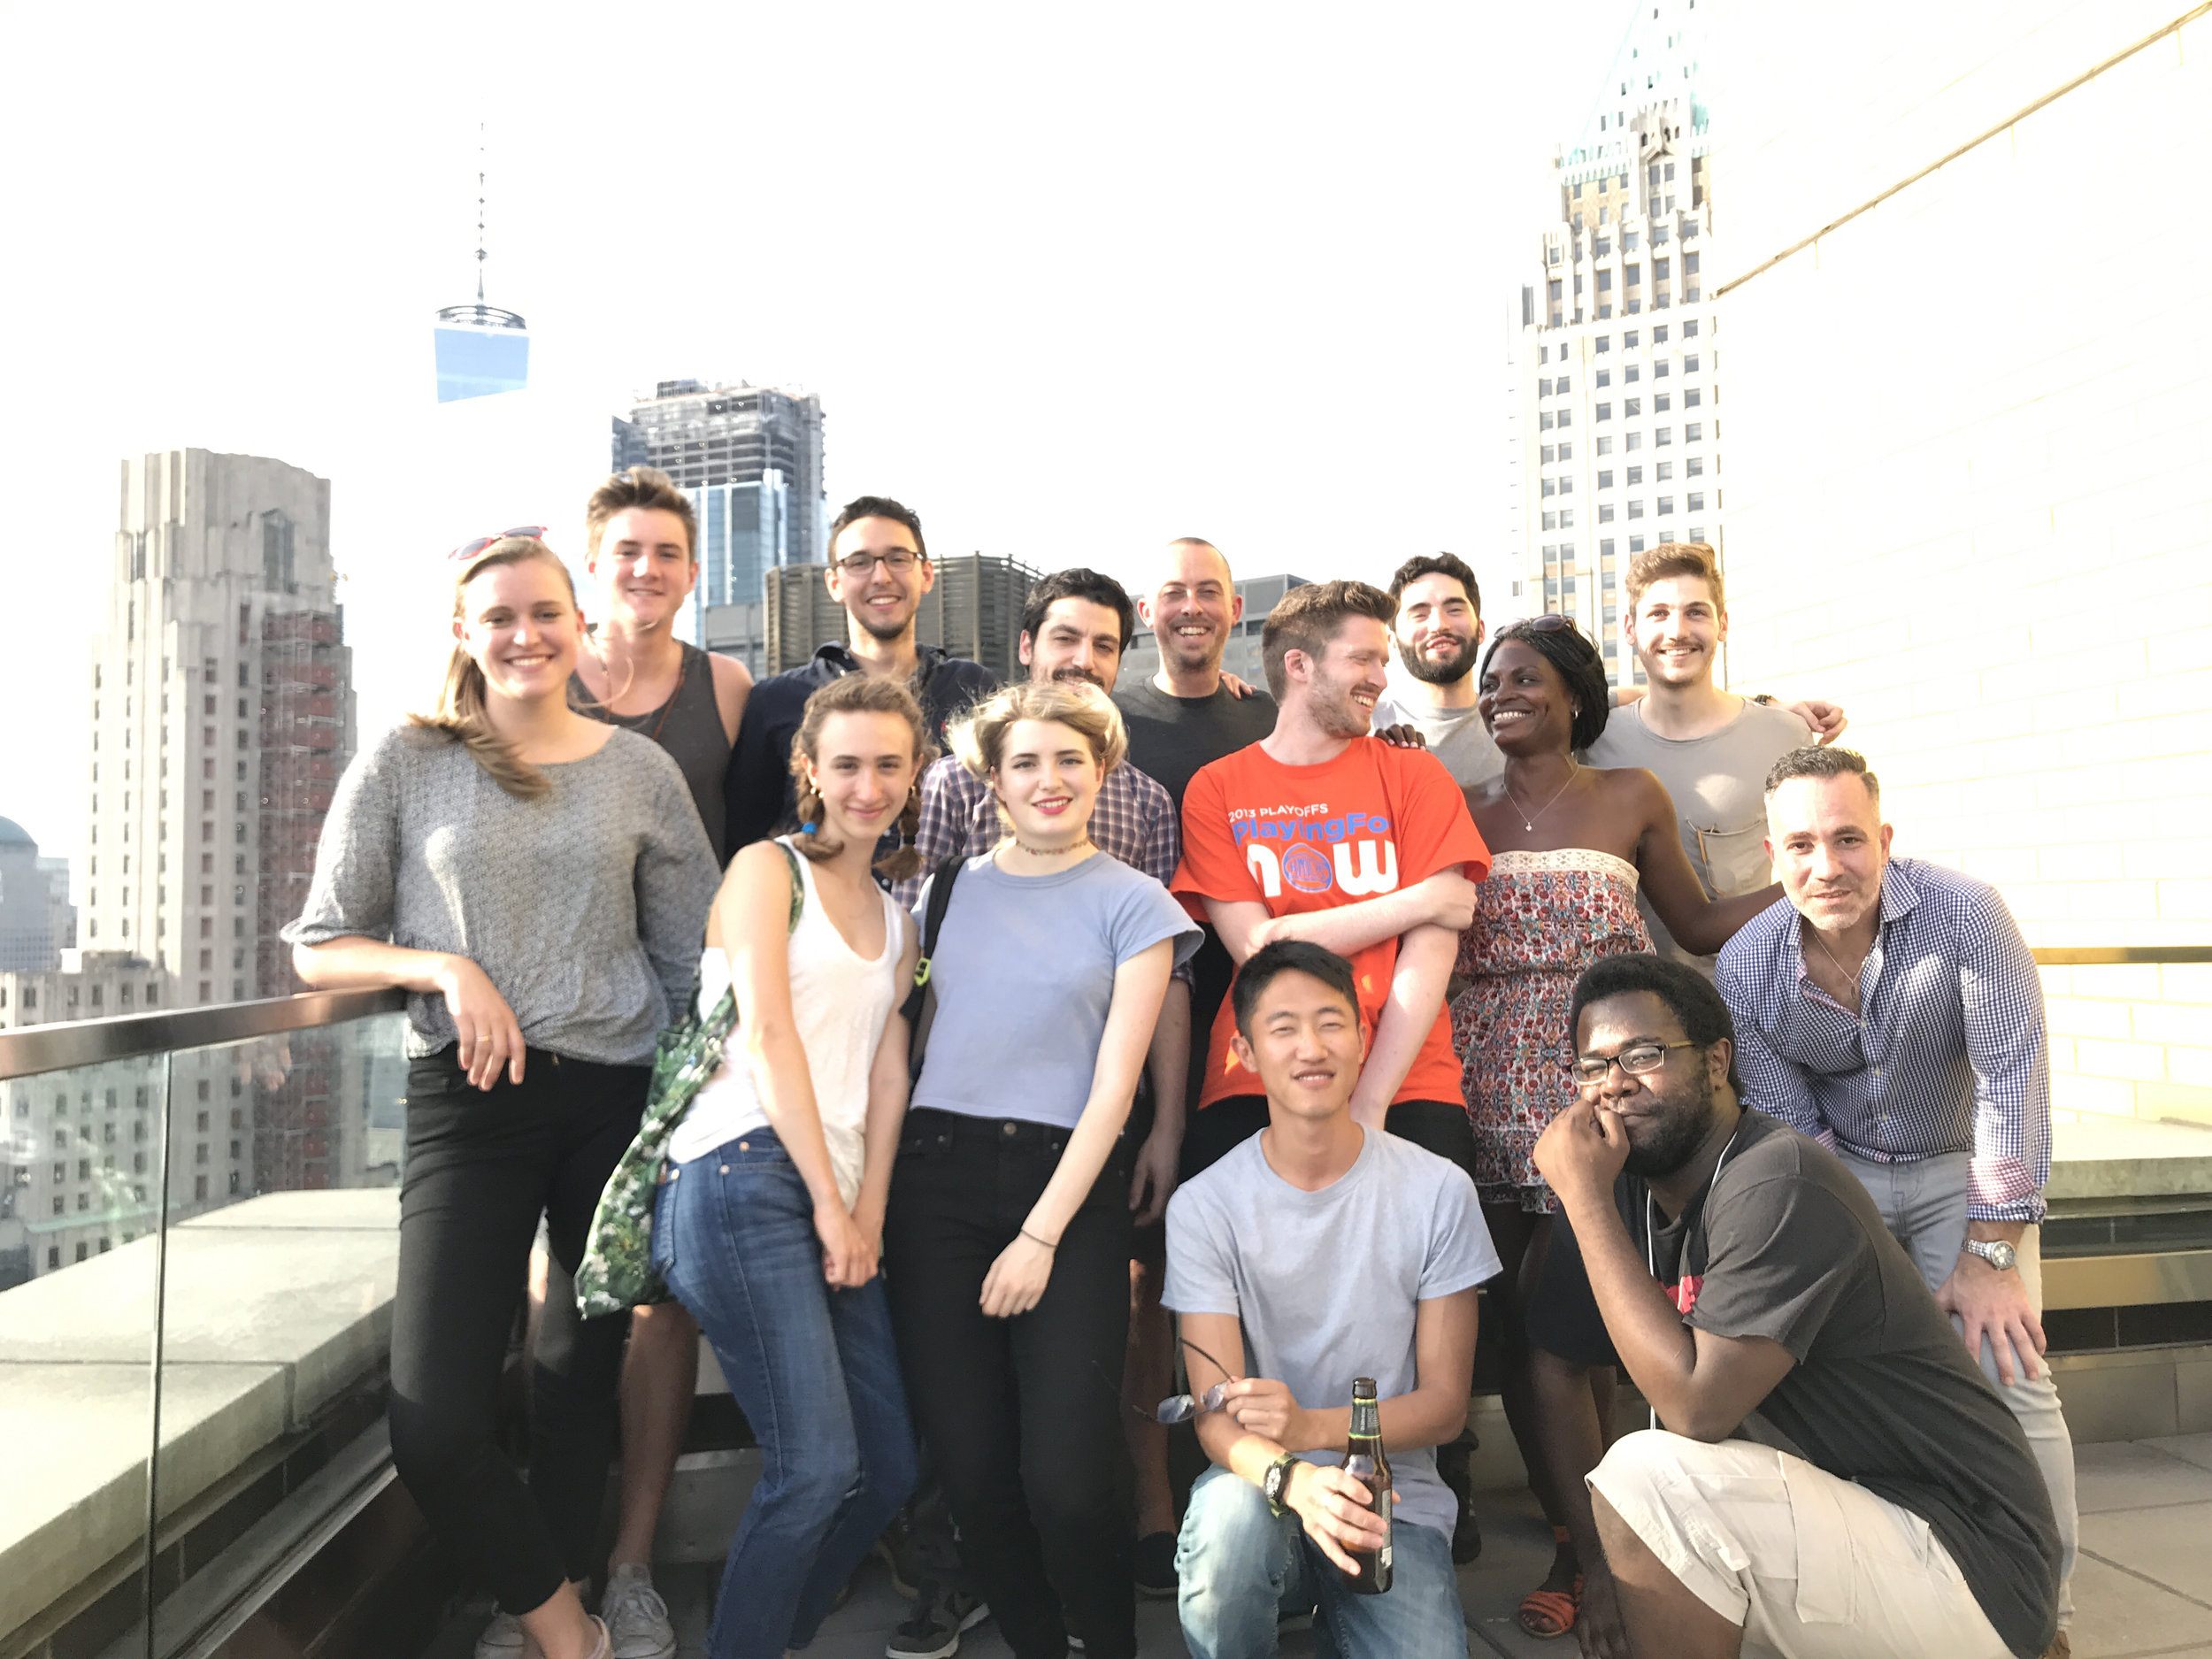 PART OF THE TEAM - Work and play with staff and interns from all backgrounds in the heart of NYC